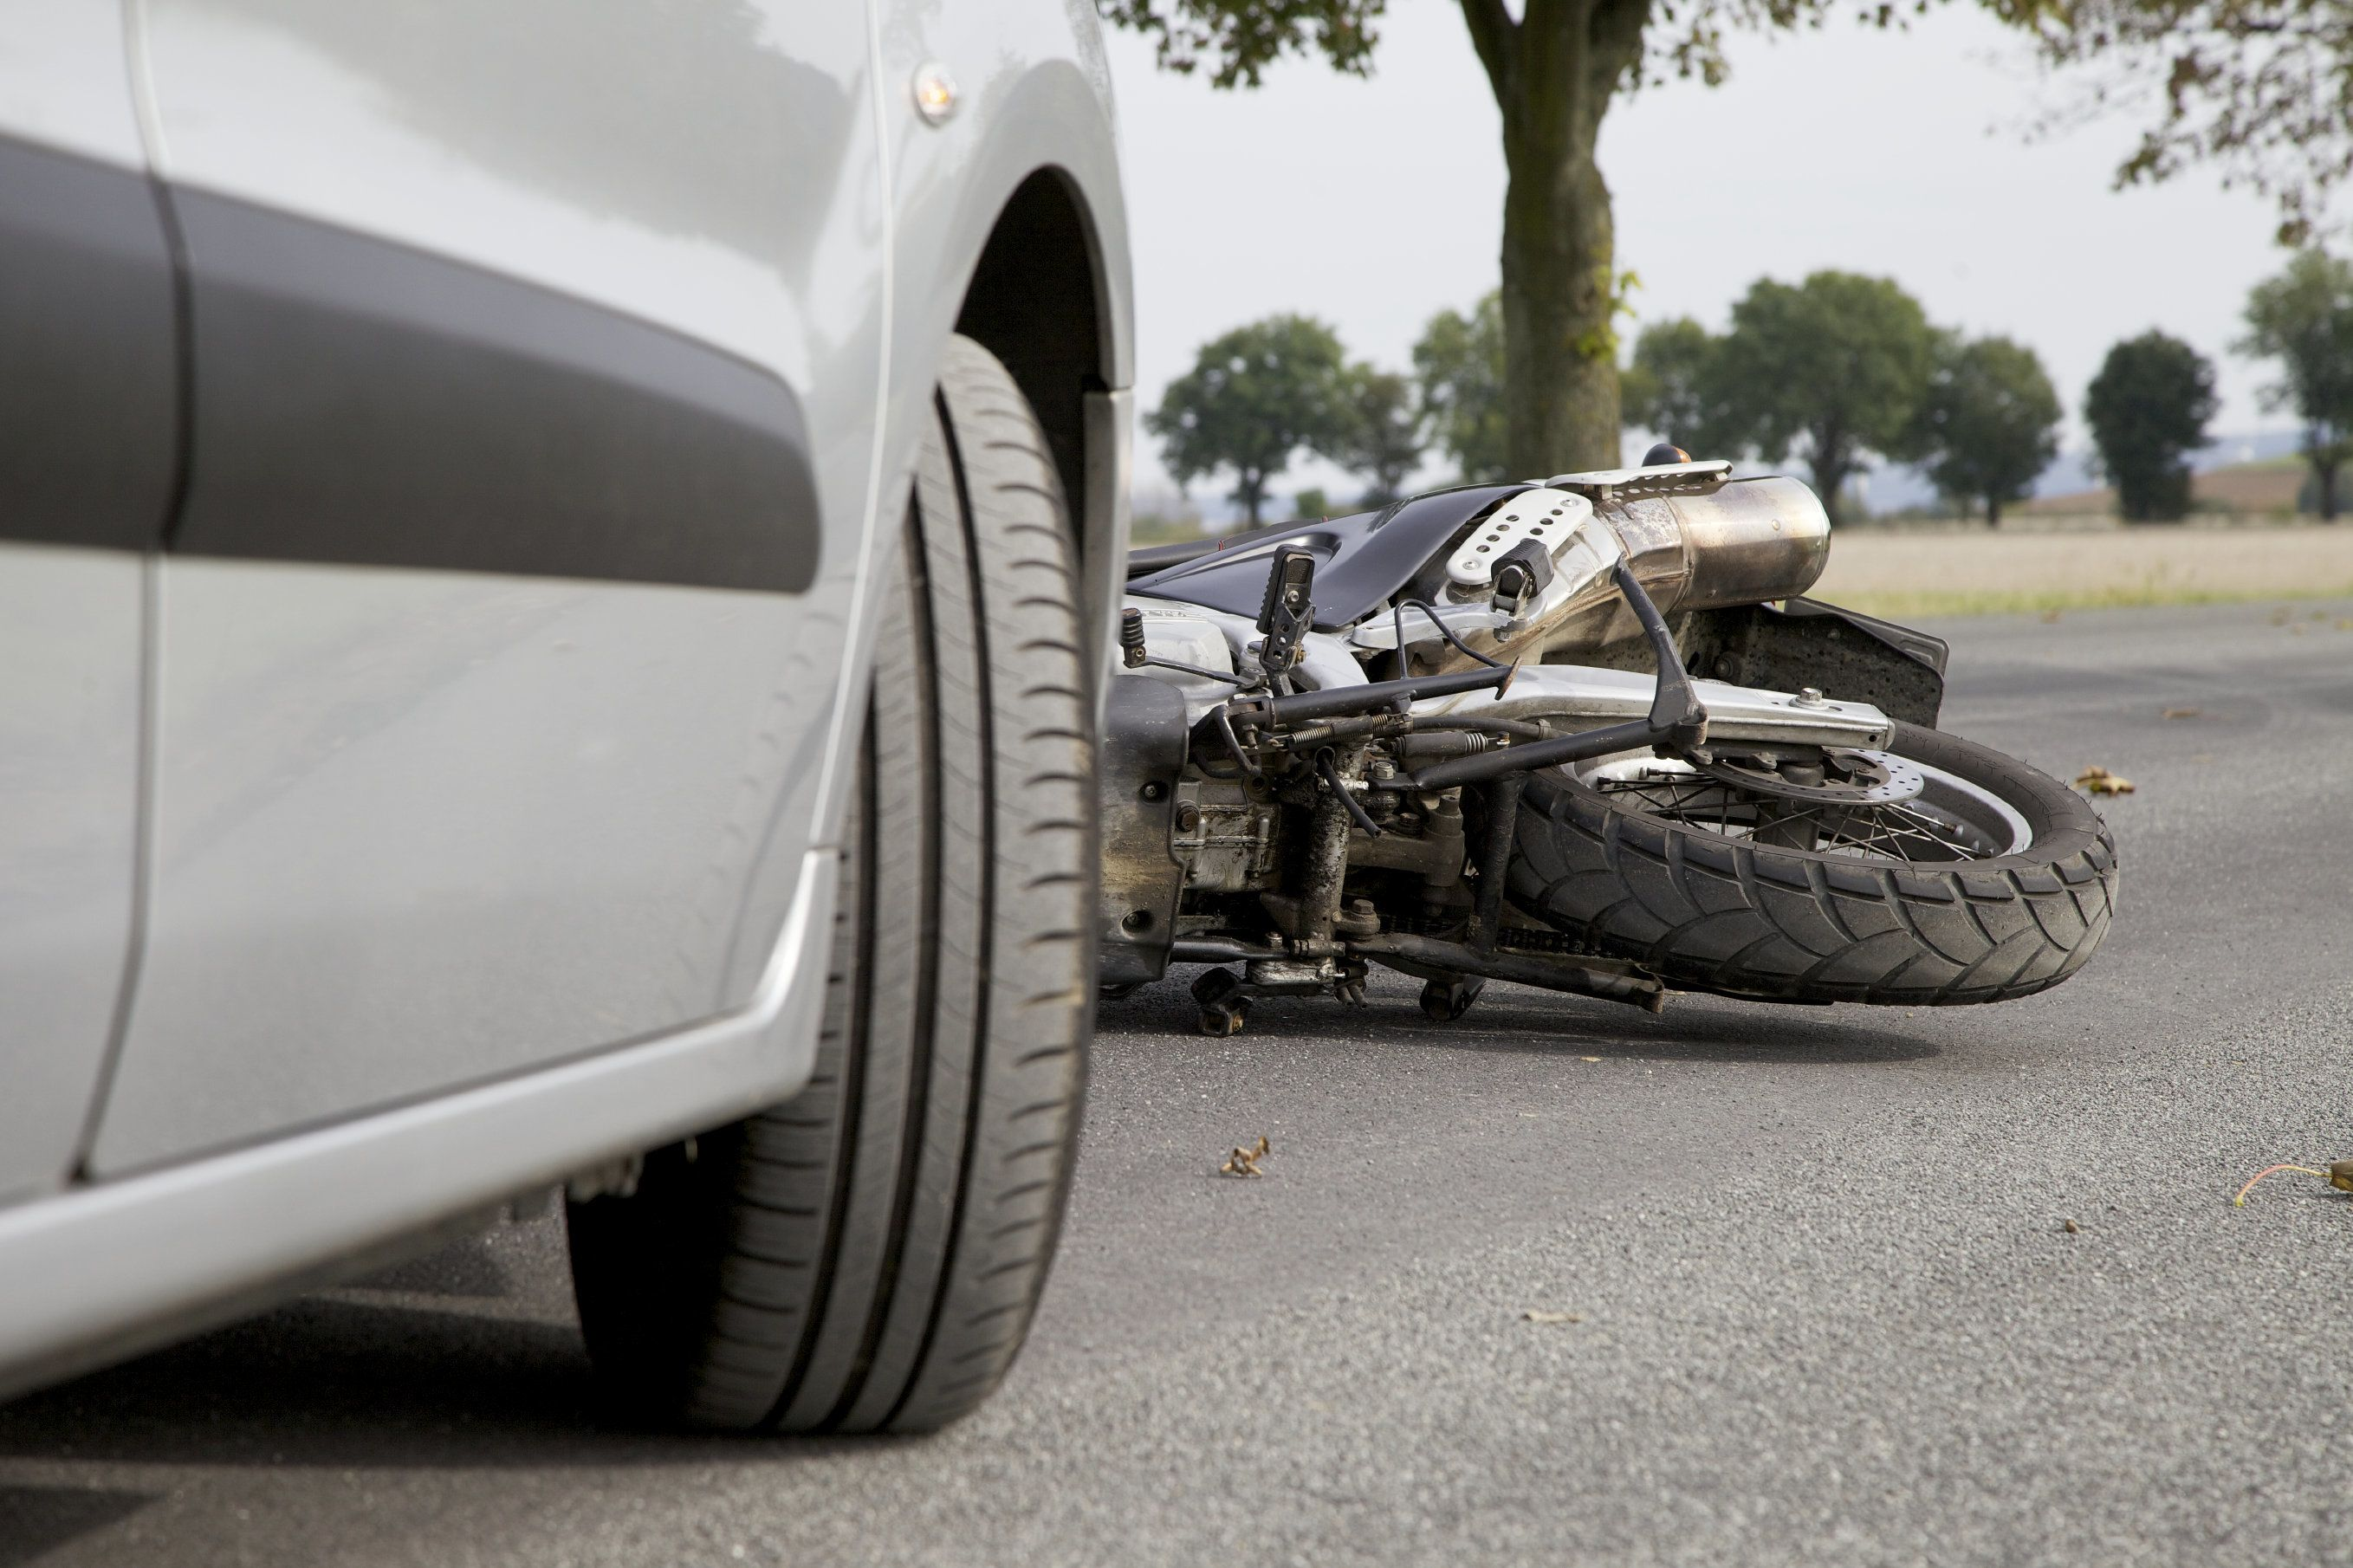 Motorcycle damaged in an accident